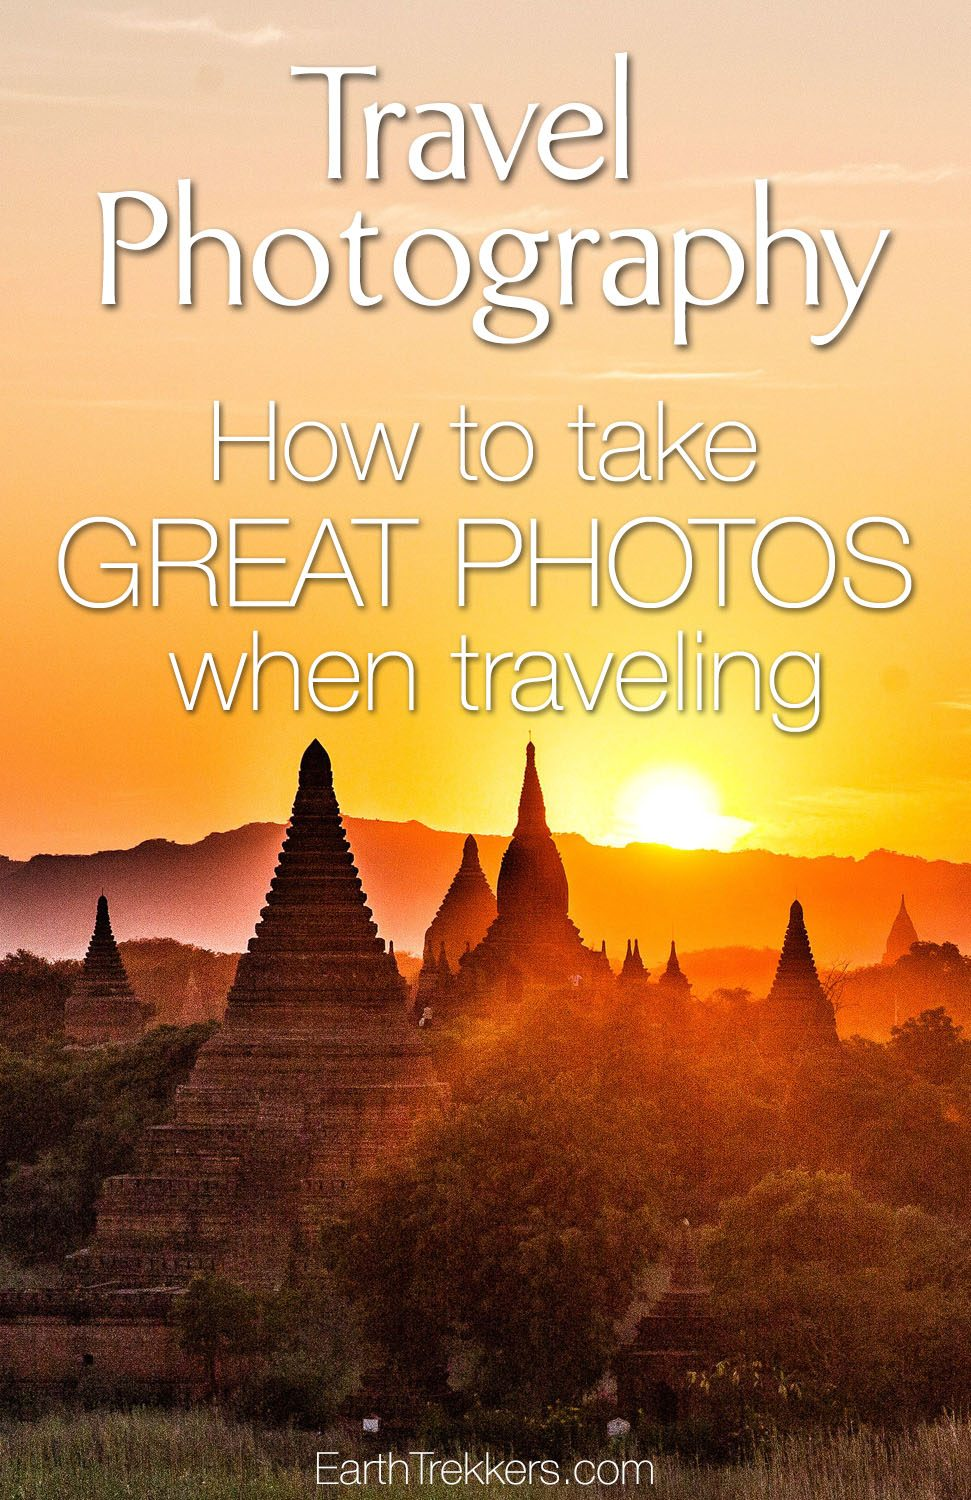 Travel Photography Guide